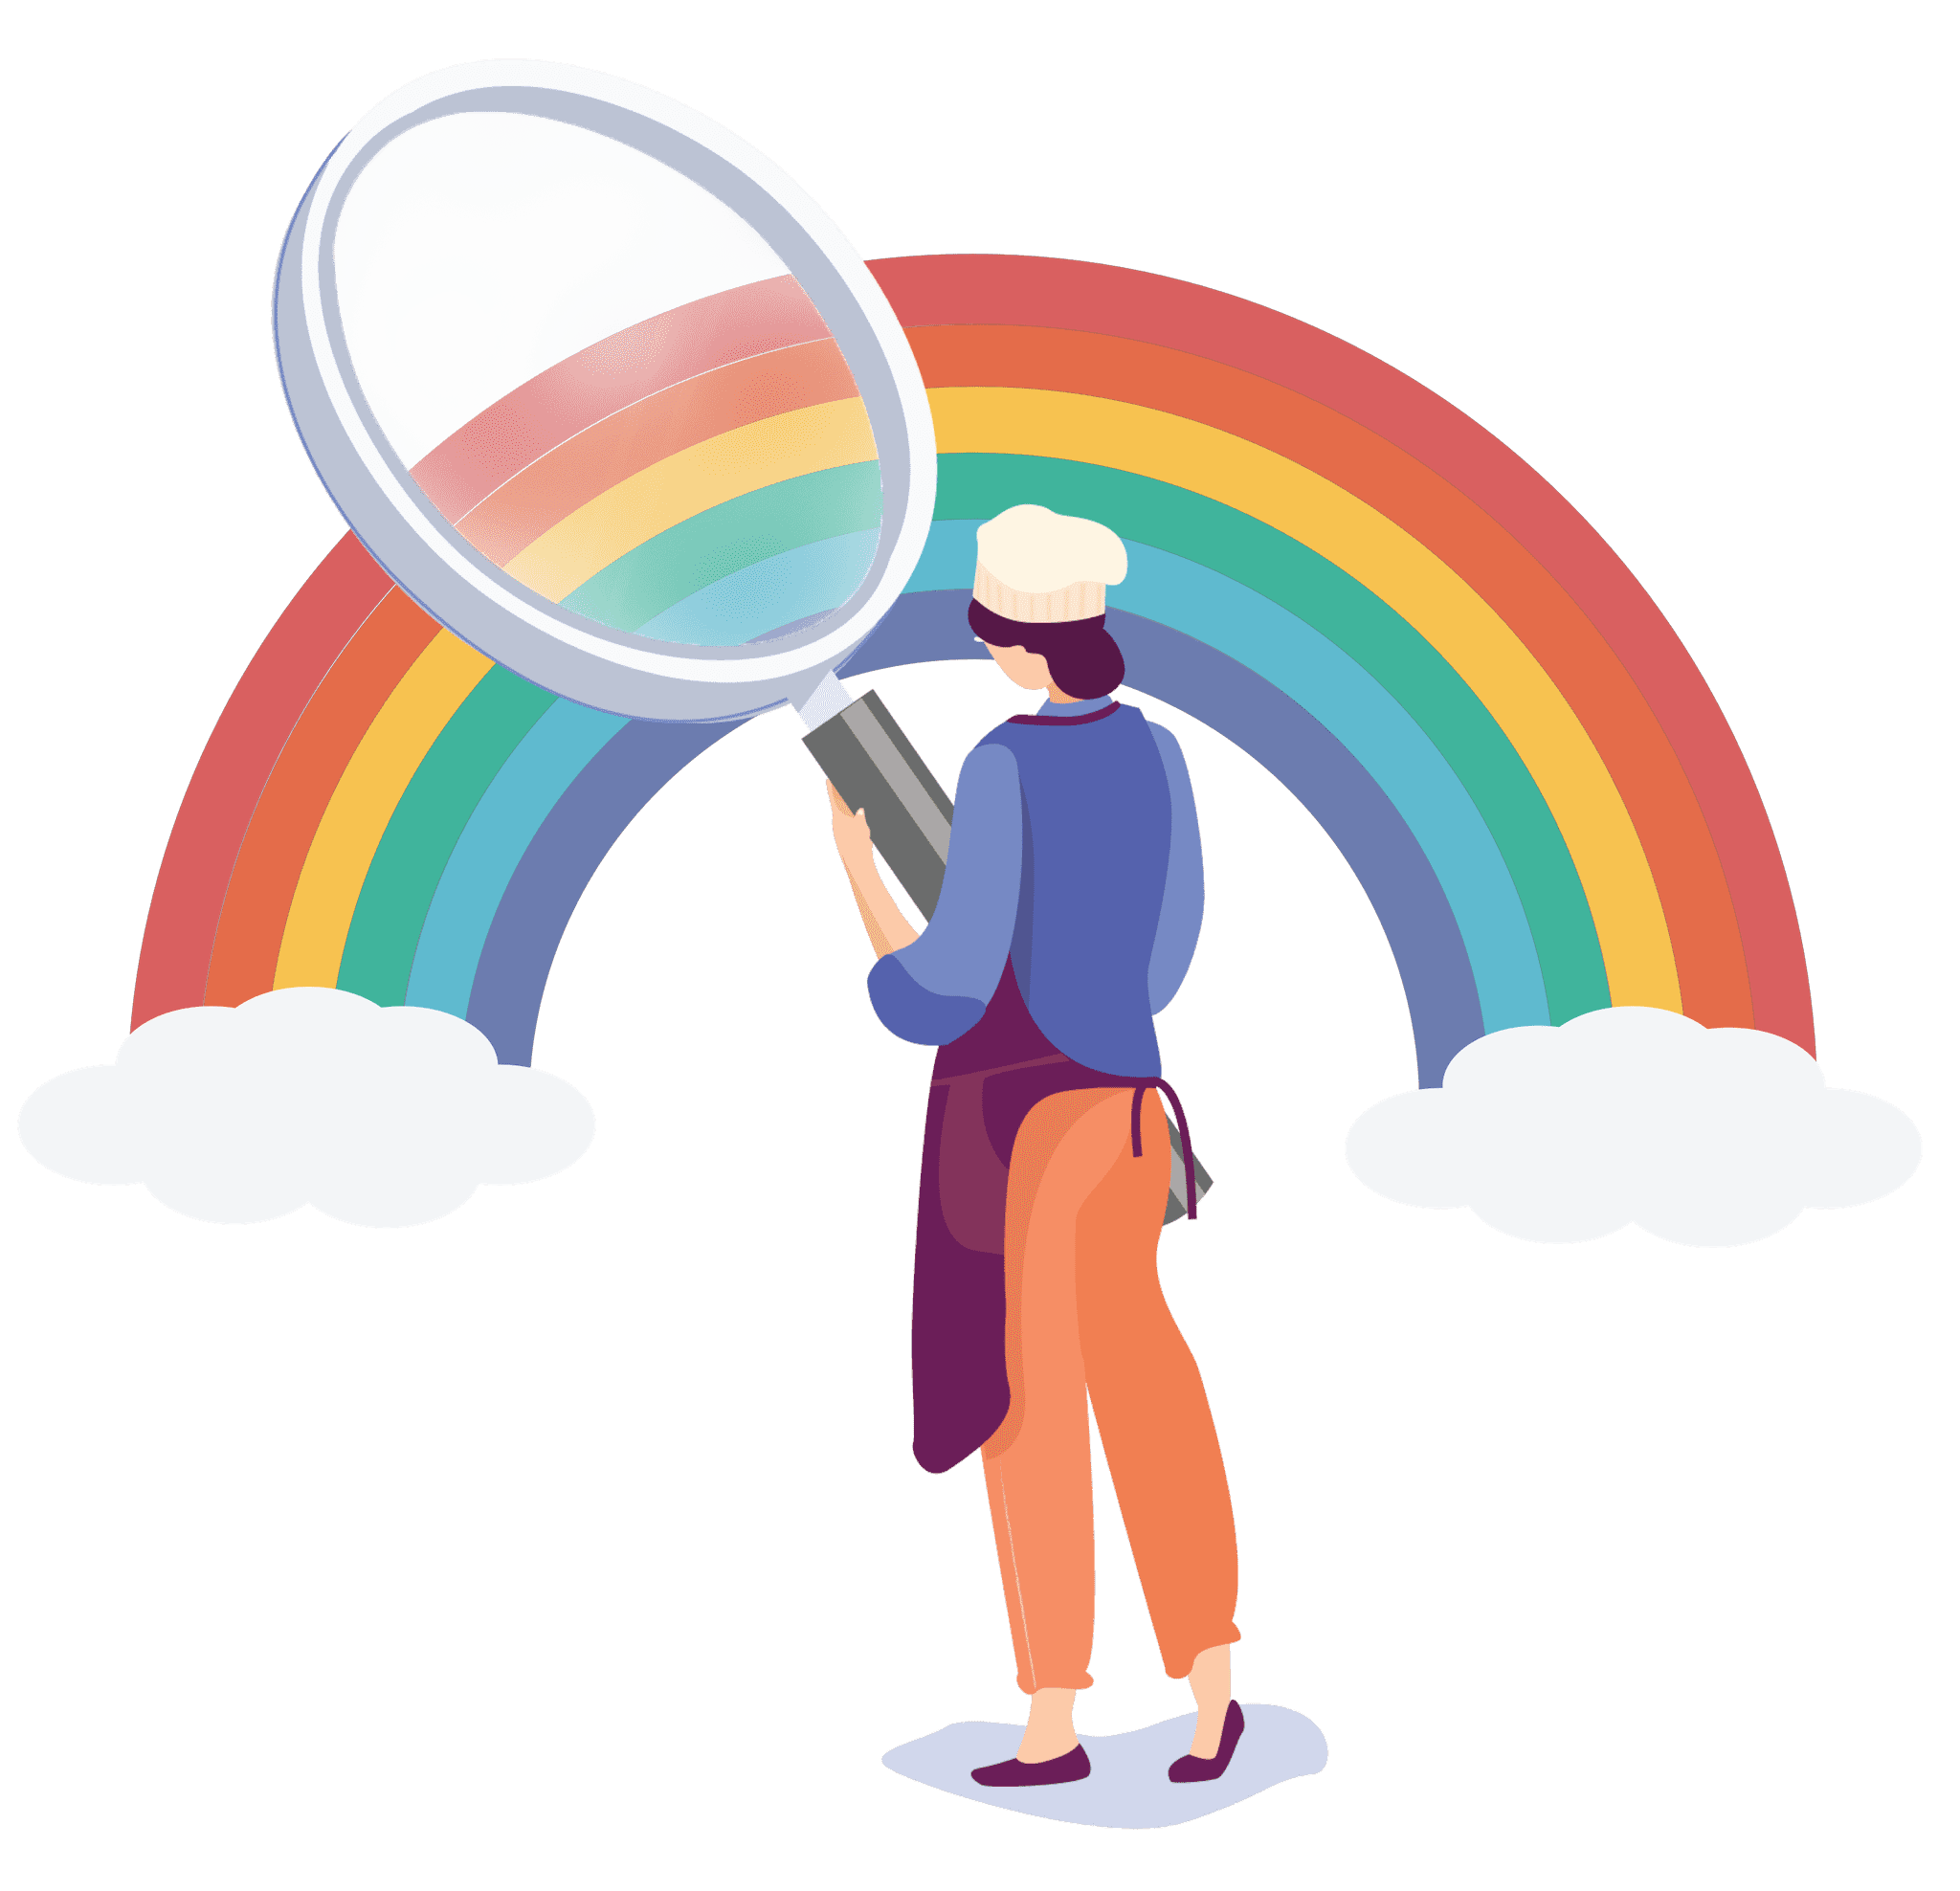 chef holding magnifying glass looking at a rainbow